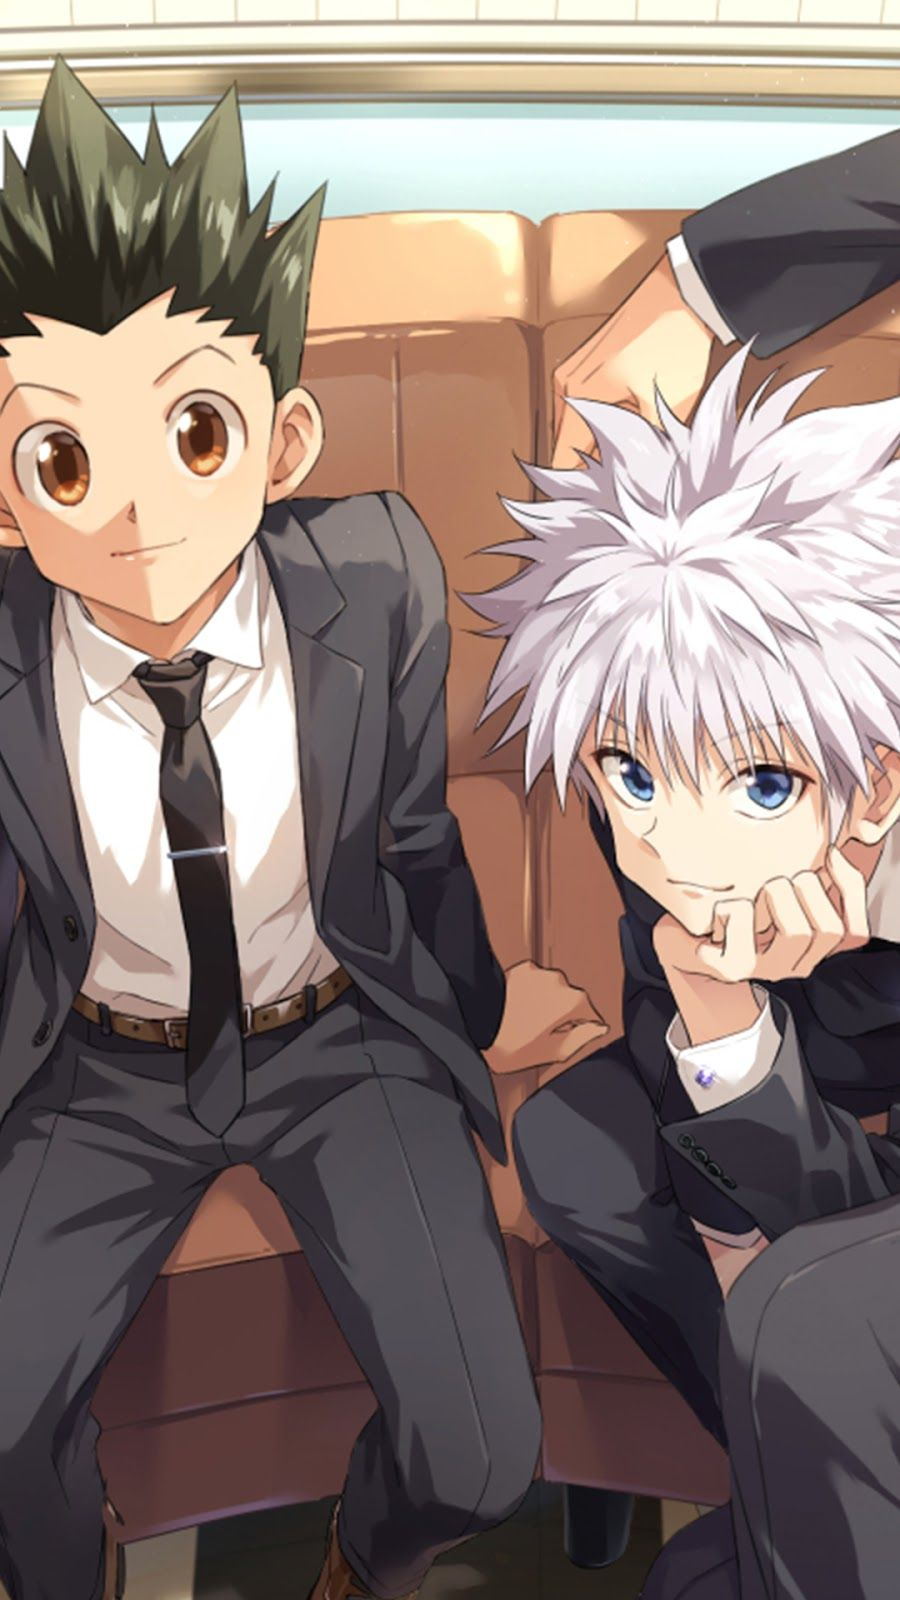 The picture taken from wallpaper abyss i only added effects using wallpaper engine. Hunter X Hunter Boys Mobile Wallpaper Gon Freecss Killua ...